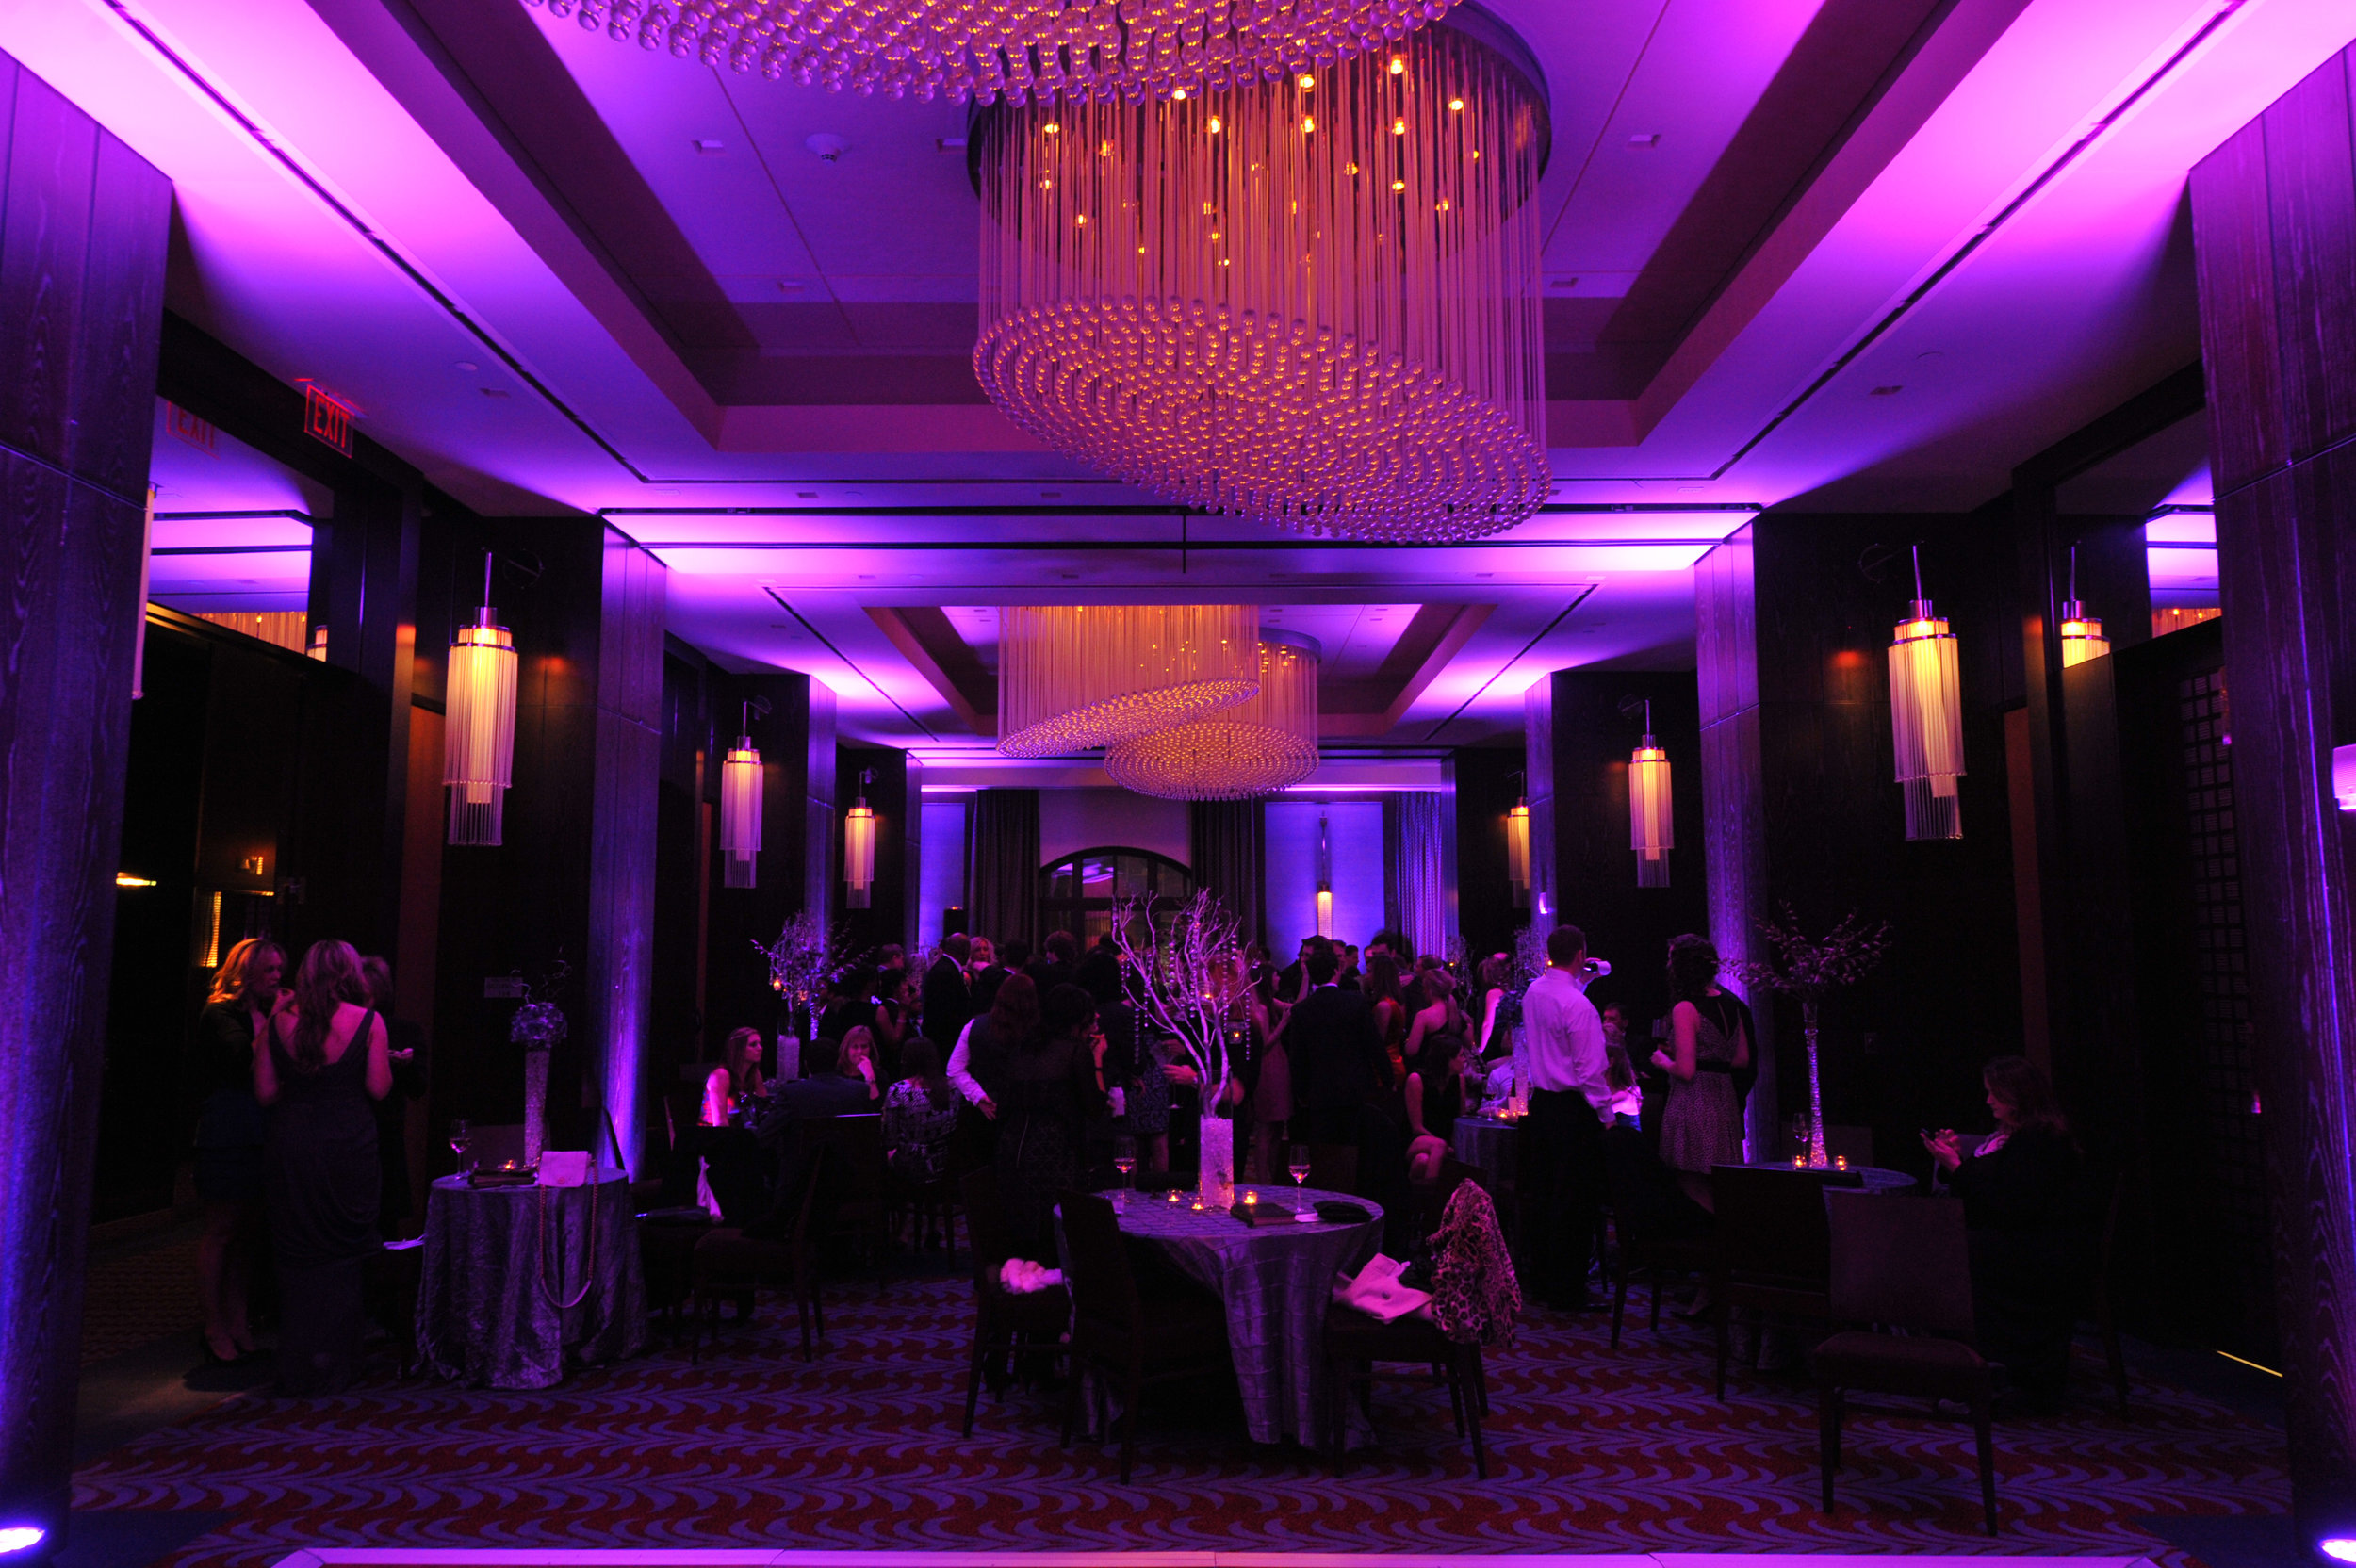 sounds elevated-hotel-wedding-purple-uplighting-fort-worth-lighting-l-beed95571c258dd2.jpg